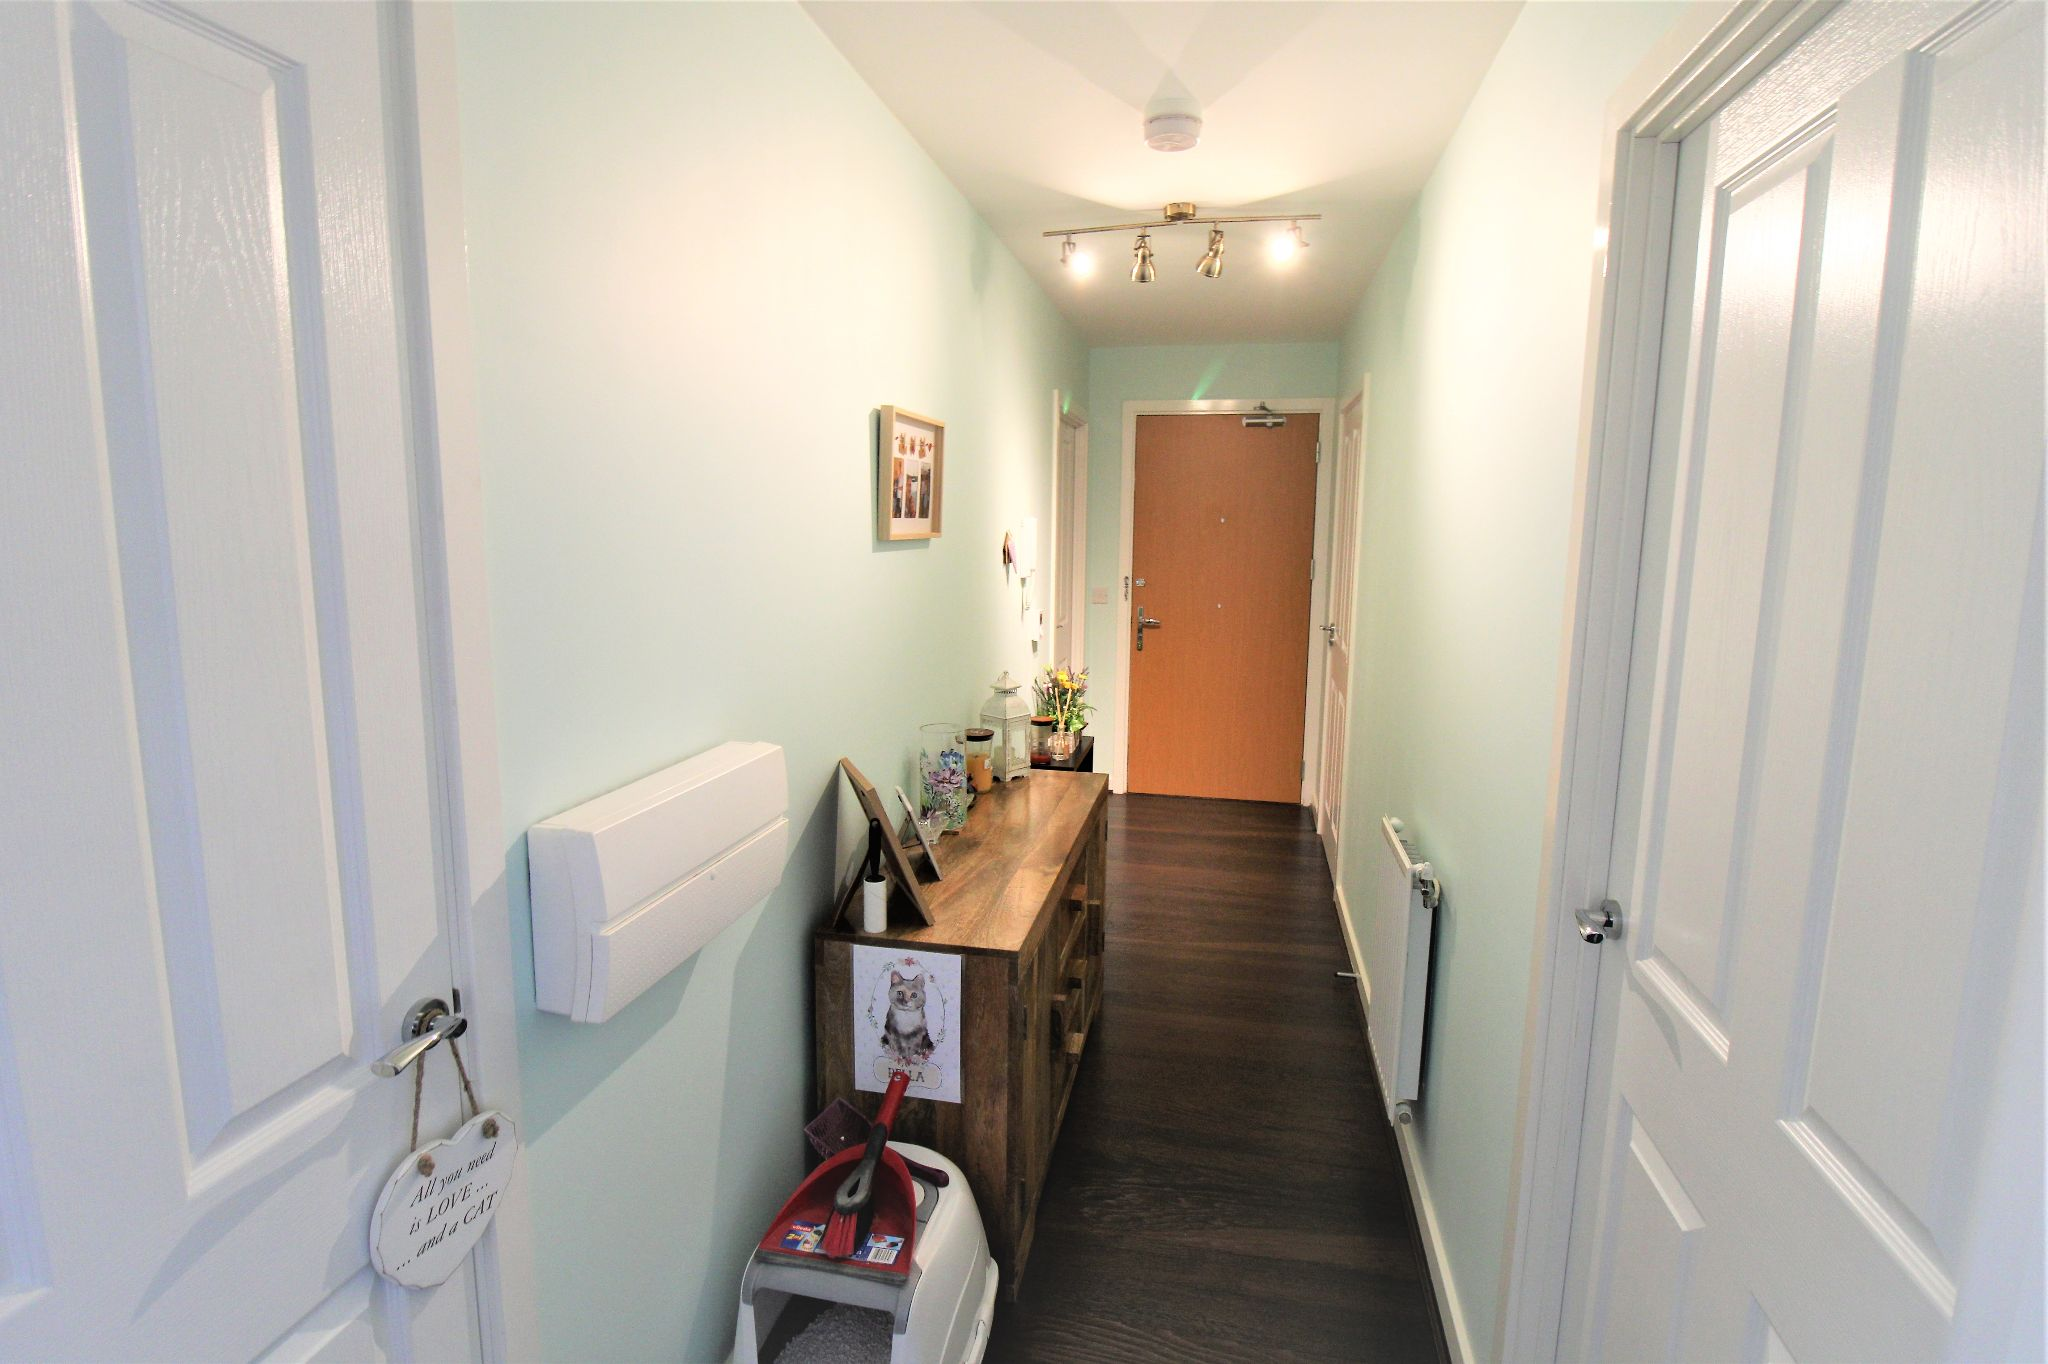 2 Bedroom Apartment Flat/apartment For Sale - Hallway